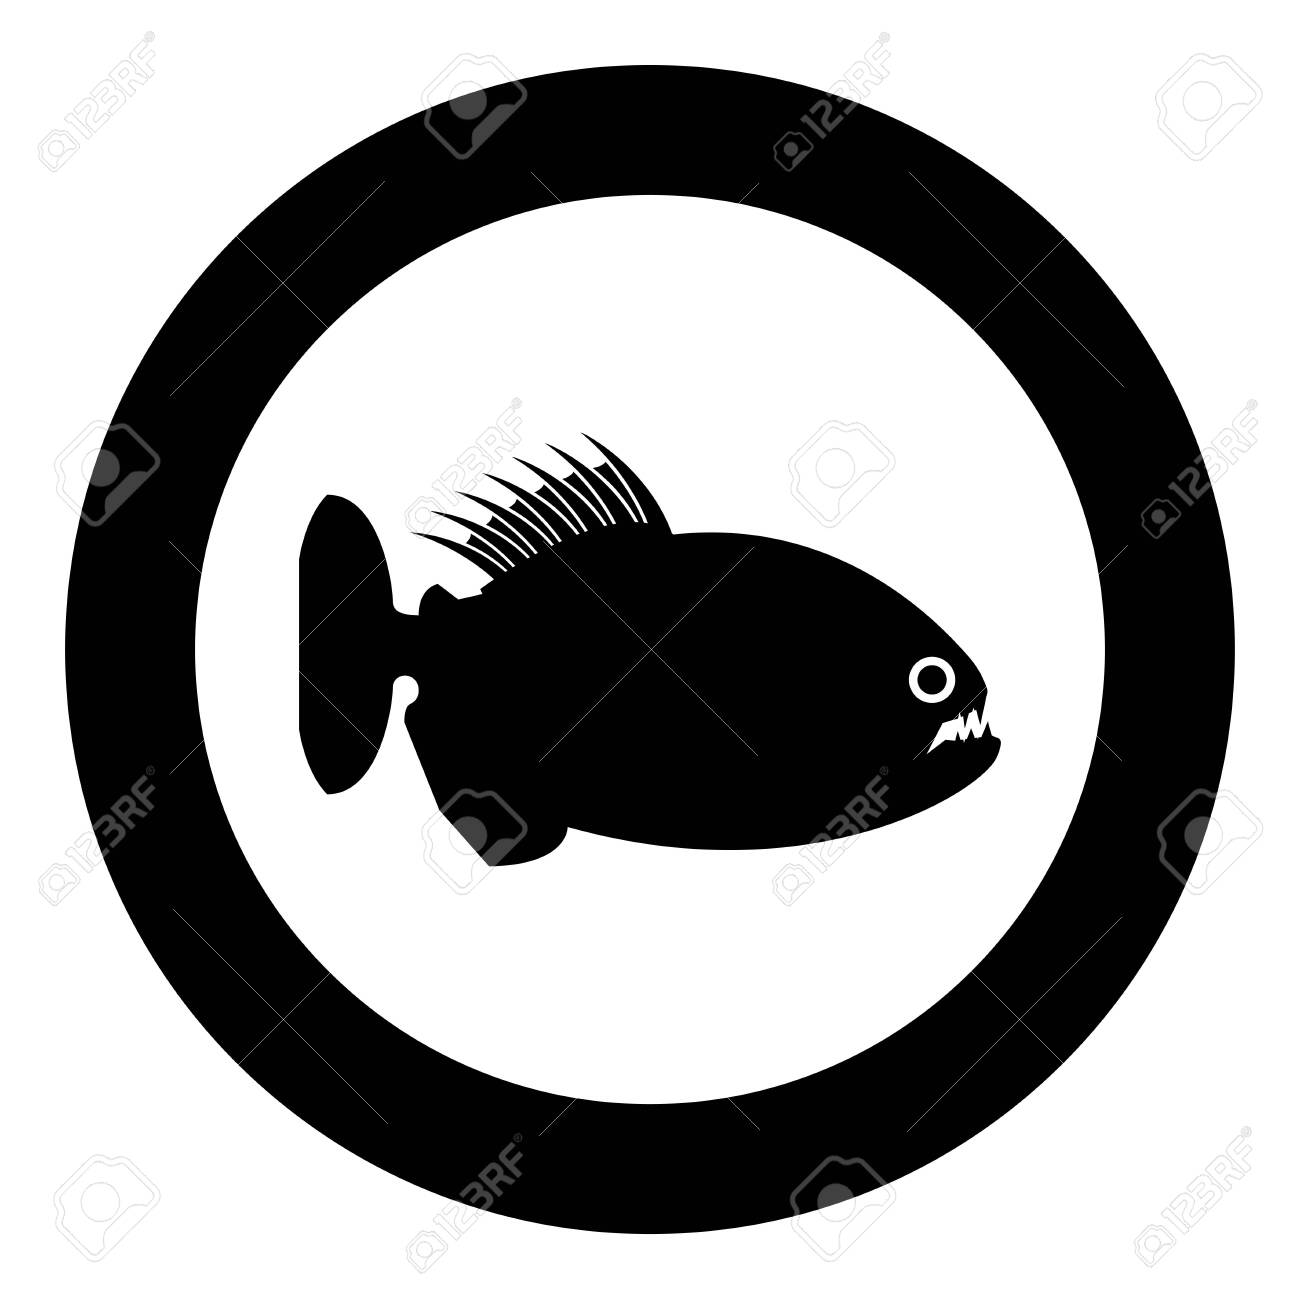 Piranha angry fish icon in circle round black color vector illustration flat style simple image - 140874318